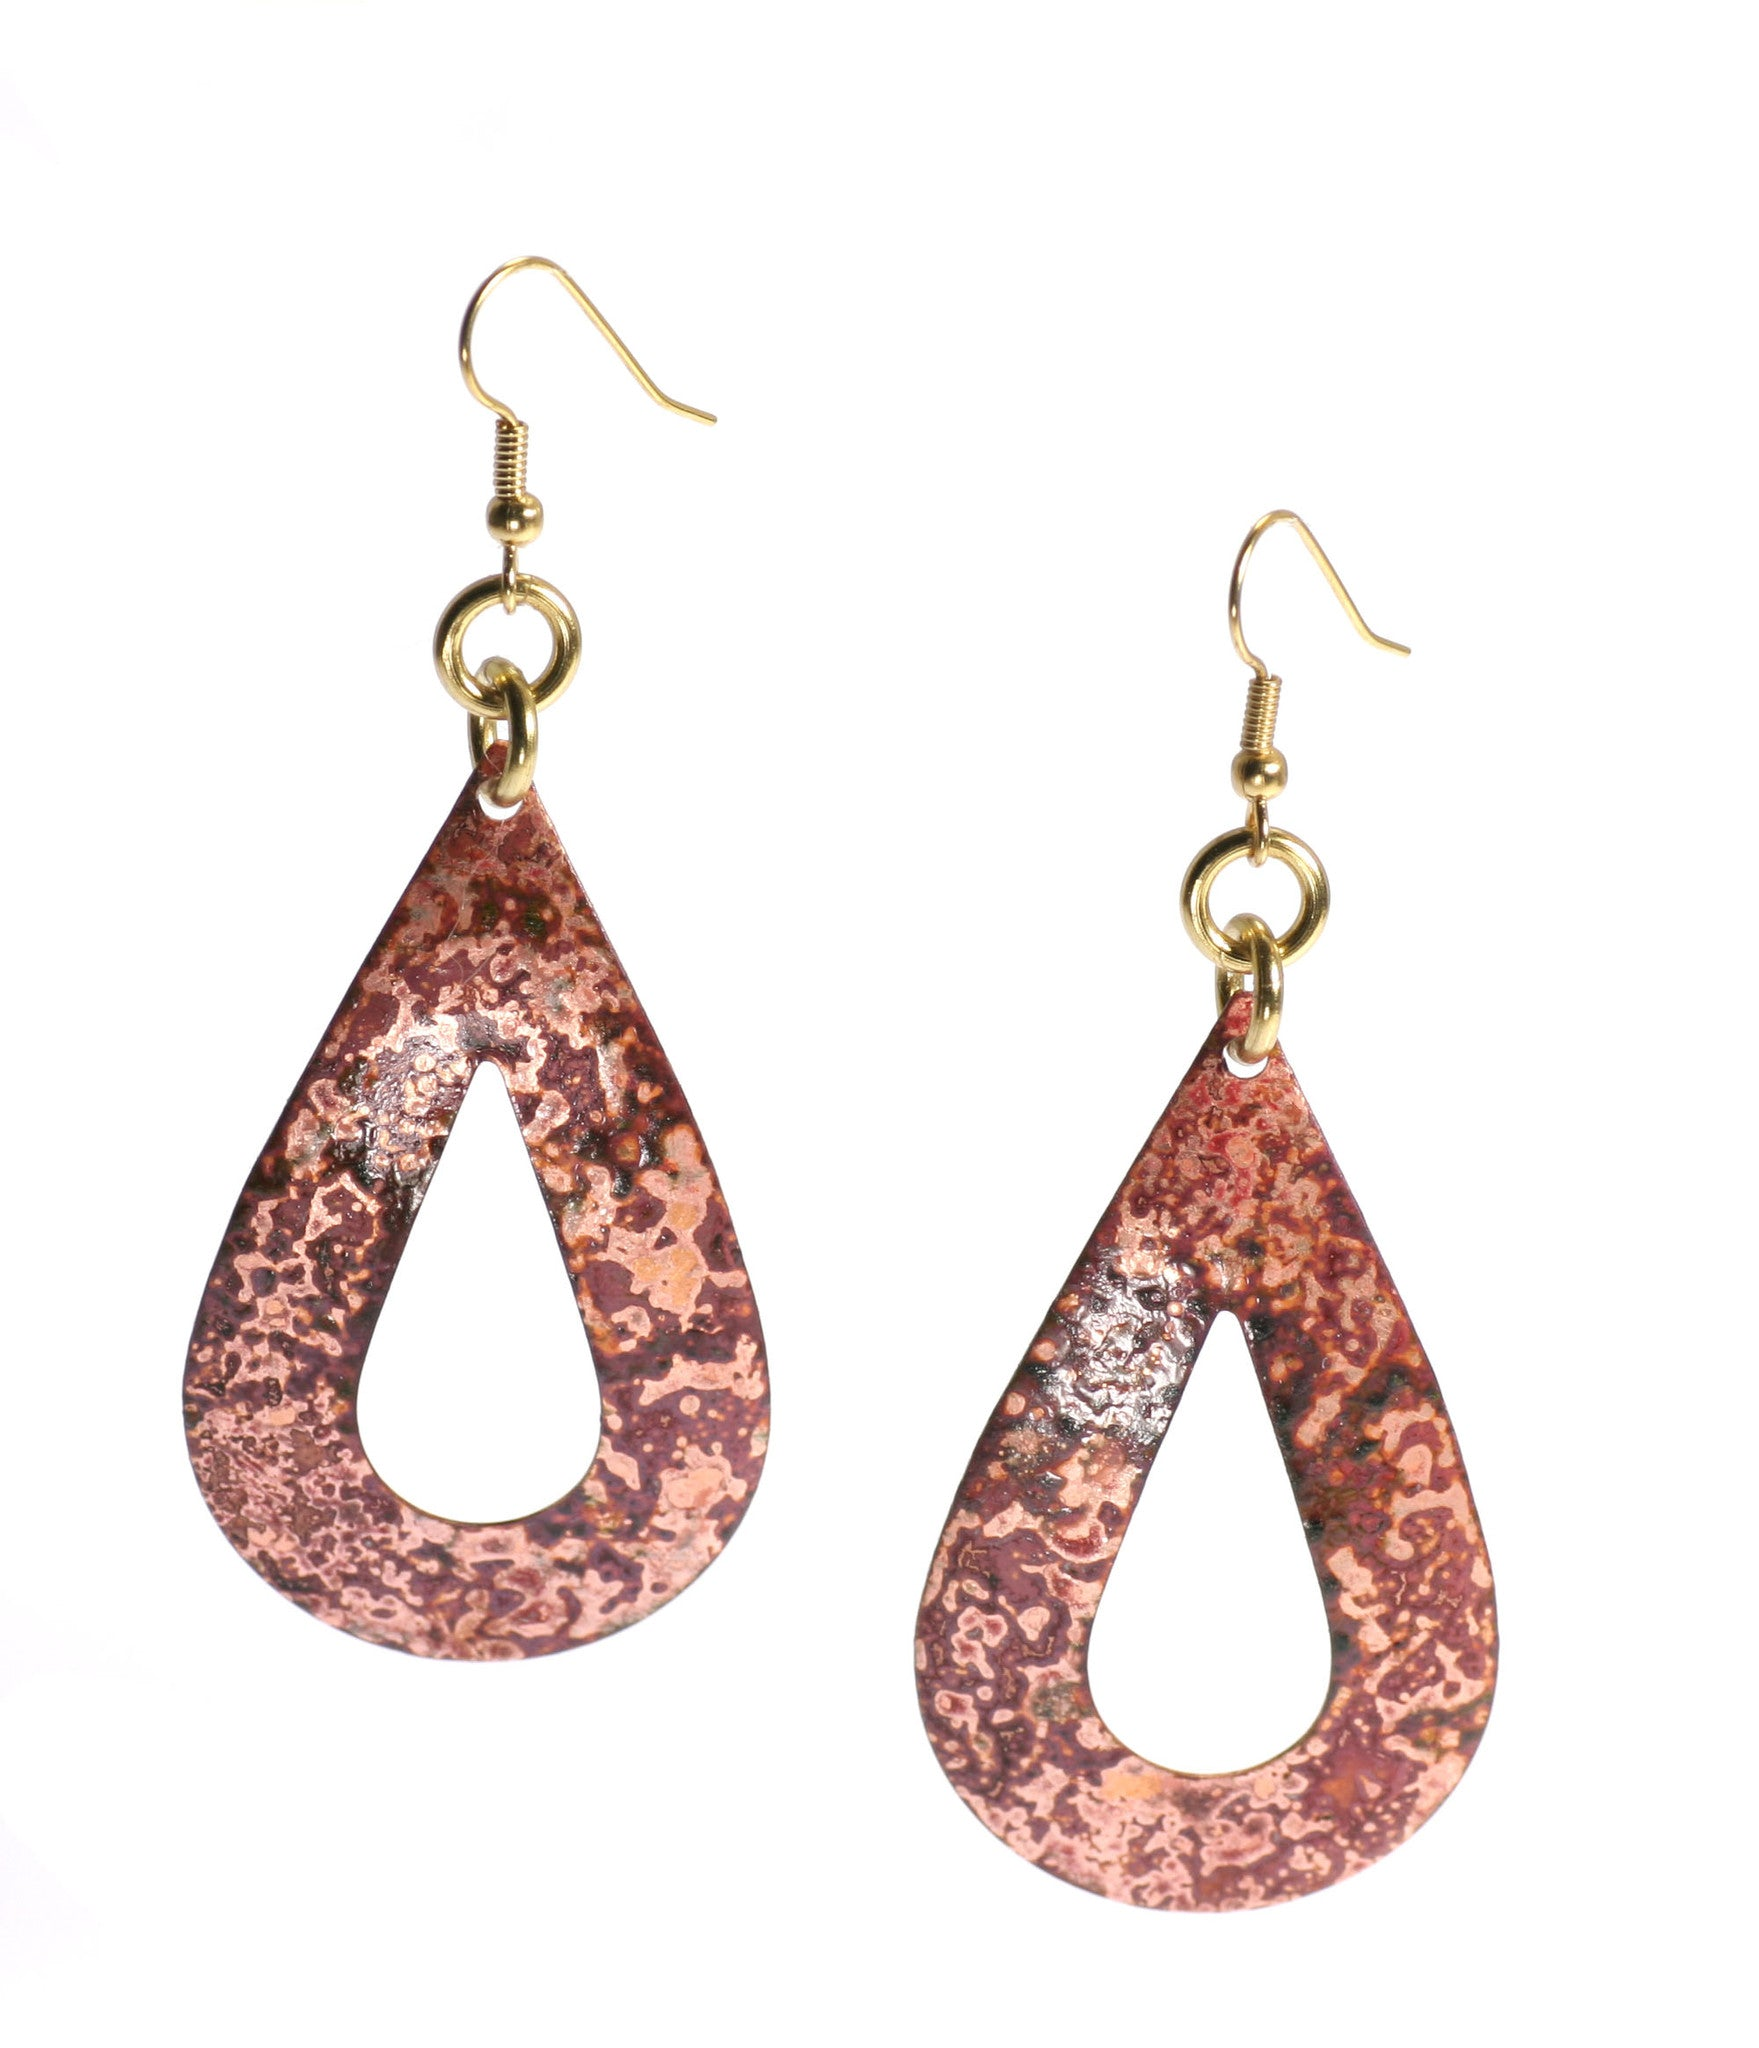 Get Over 30% Off Red Patinated Copper Tear Drop Earrings on Amazon.com!